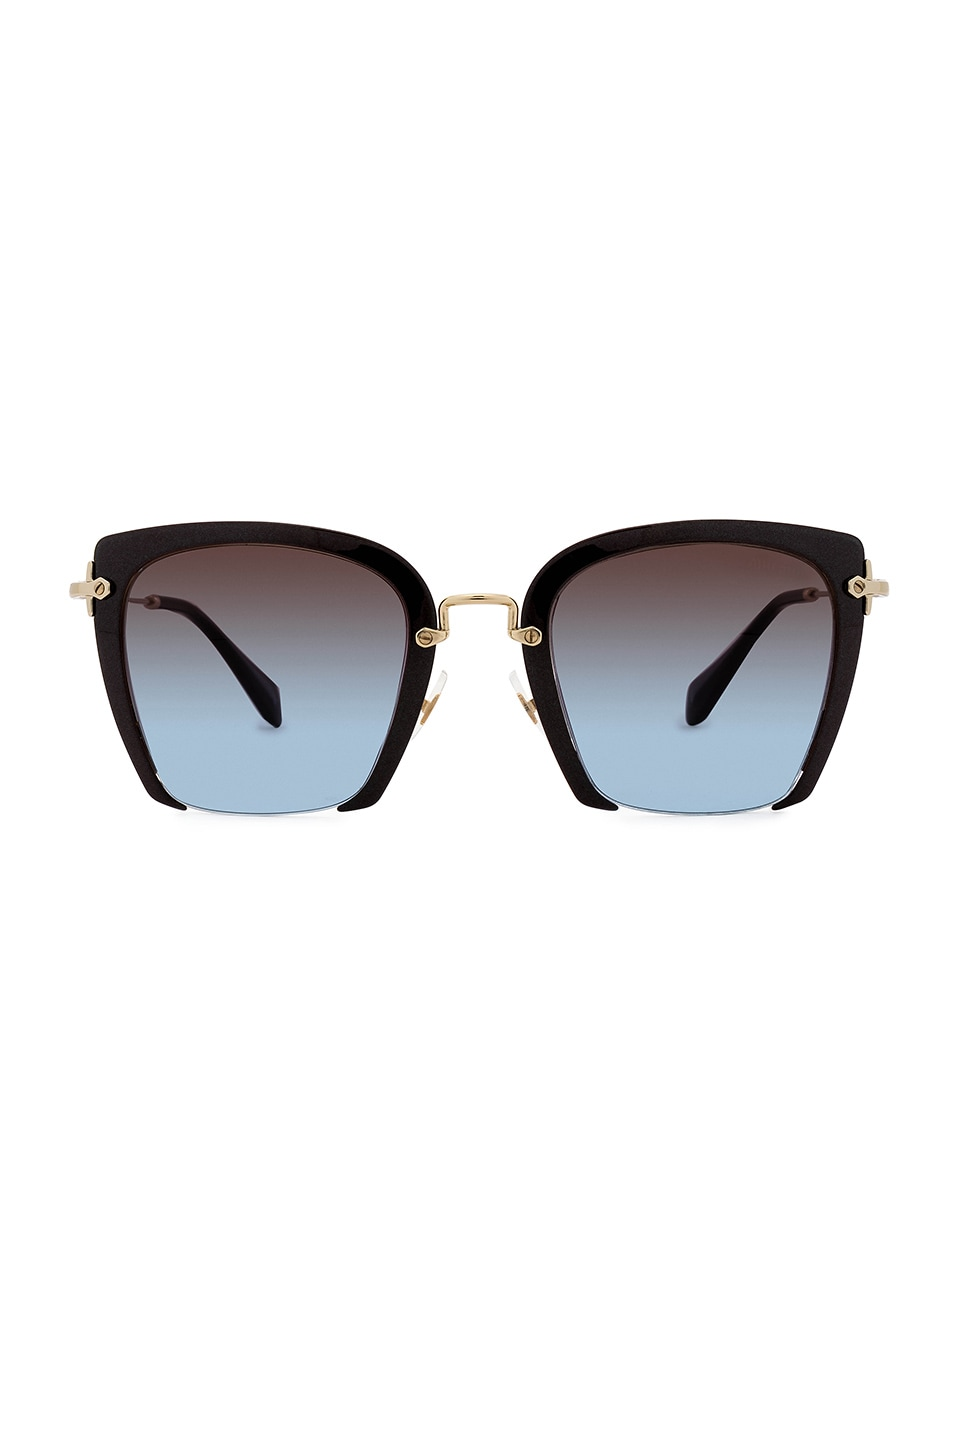 Miu Miu Rasoir Square in Glitter Brown & Azure Pink Brown Gradient